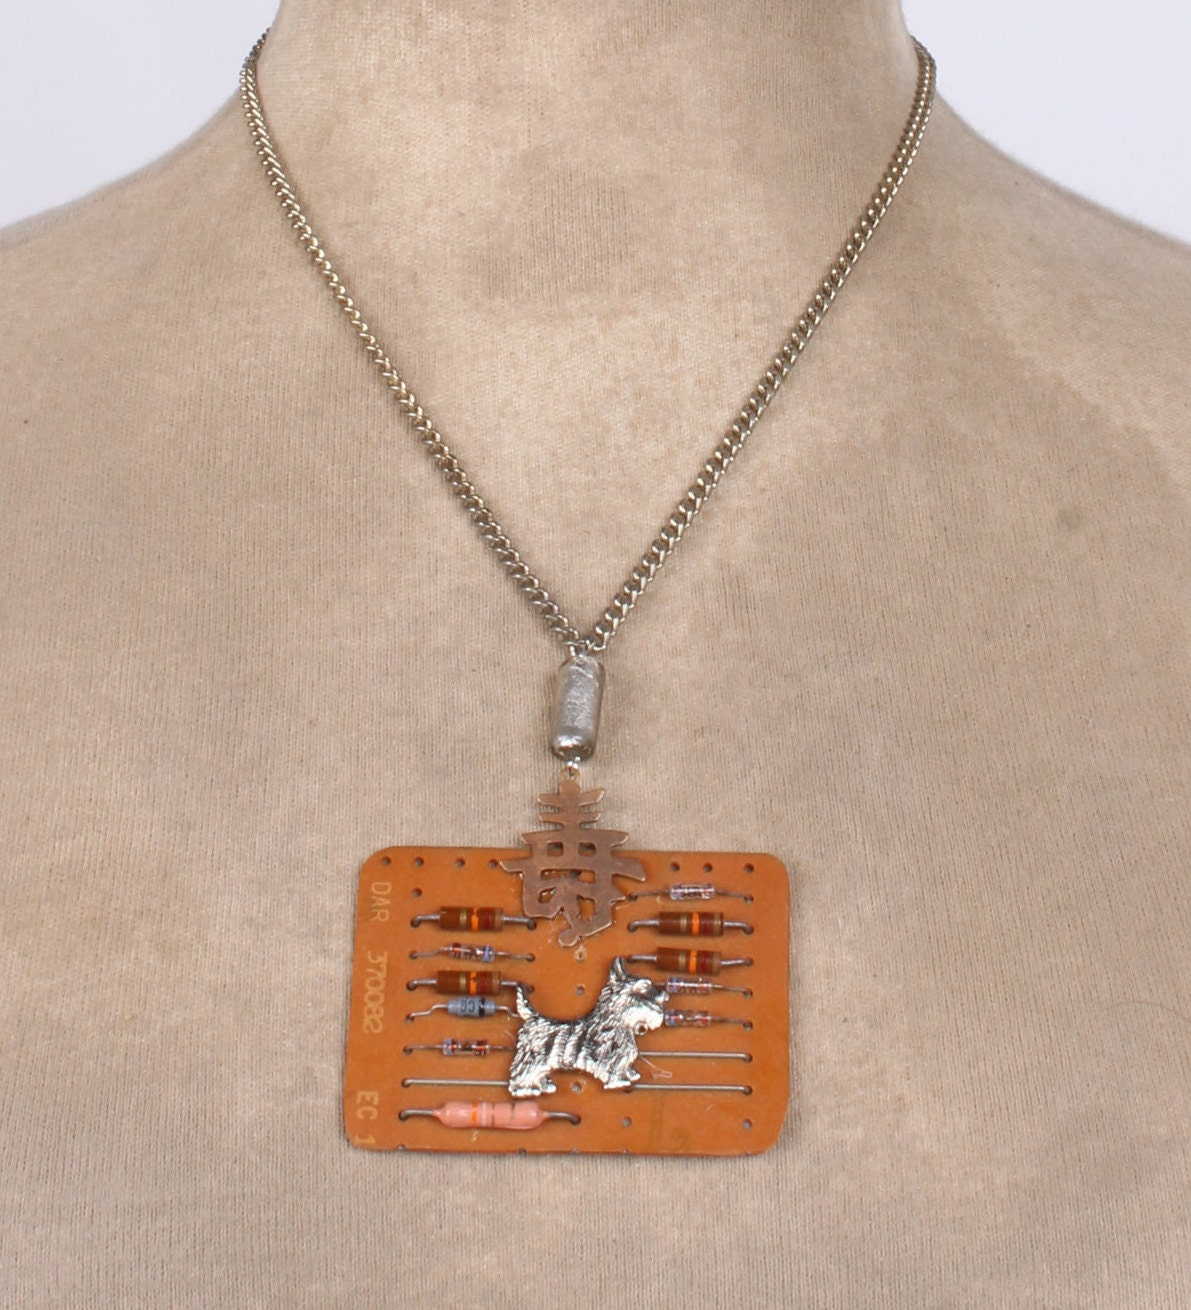 Scotty Dog On A Vintage Computer Circuit Board Necklace Etsy Green Picture Frame By Robyriker Zoom